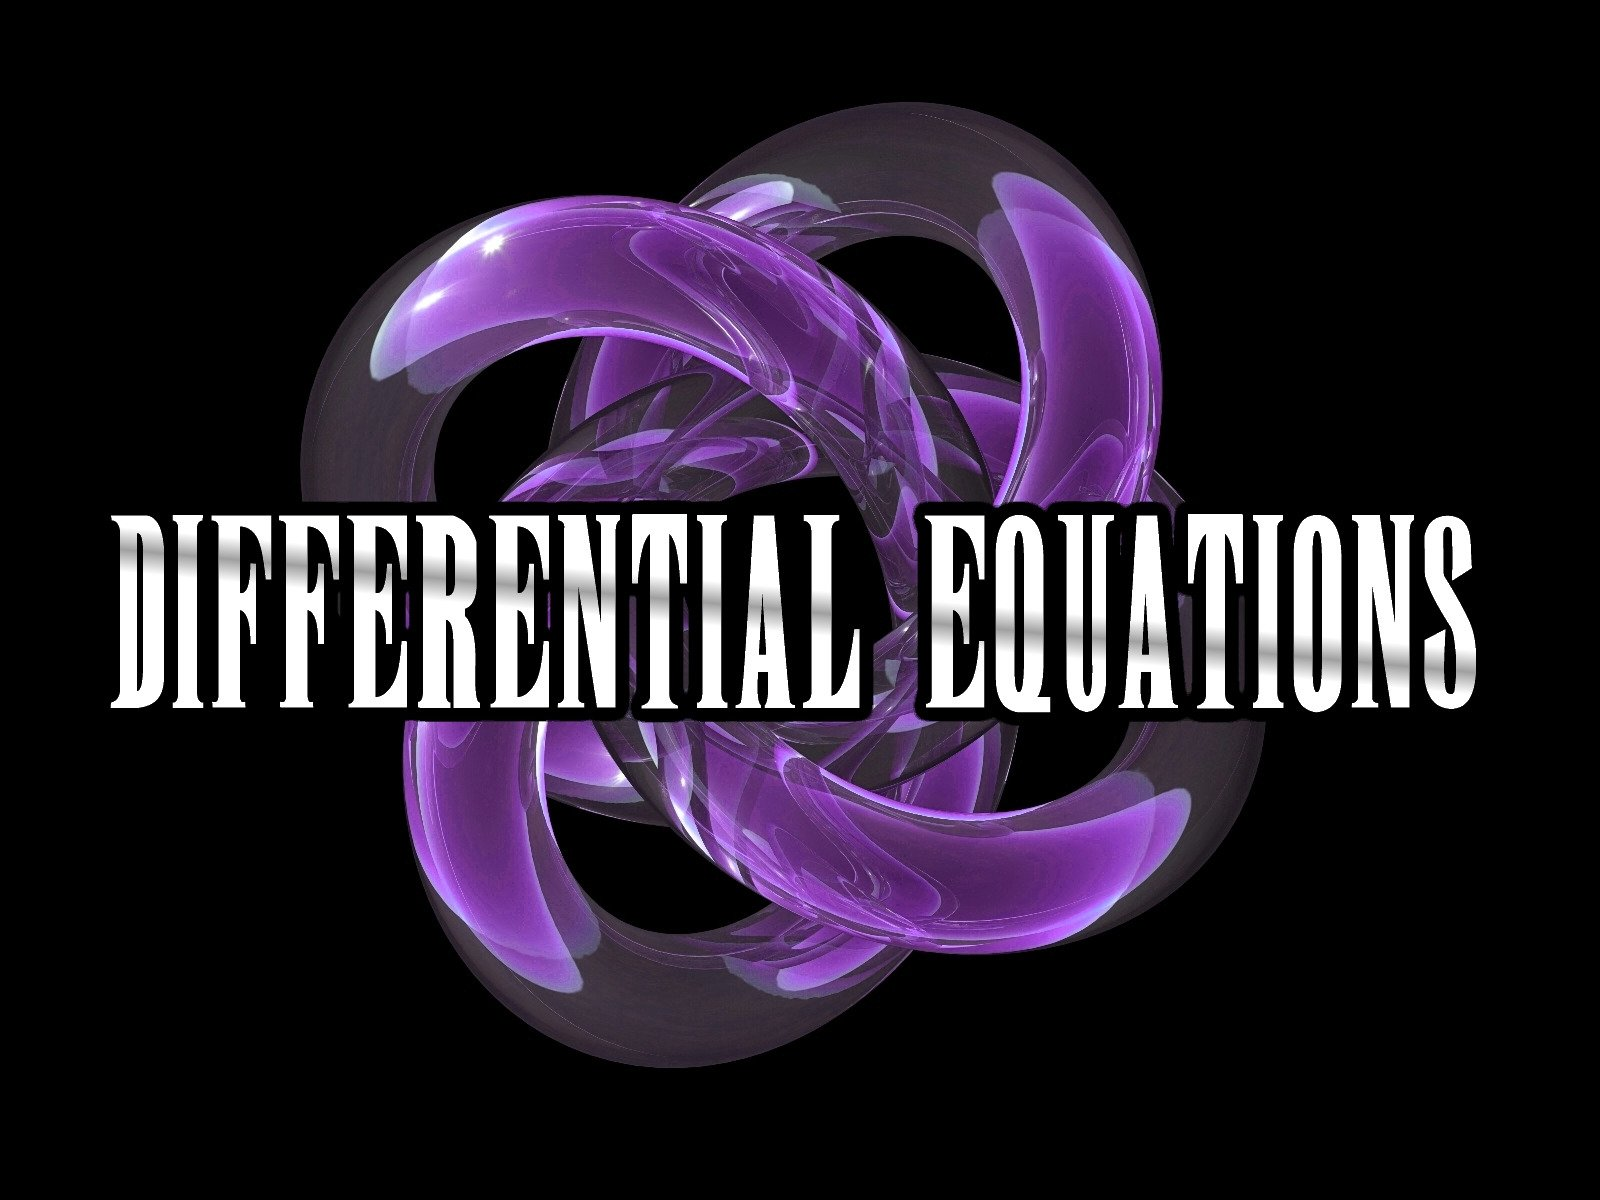 Differential Equations (BSCPE 2A)